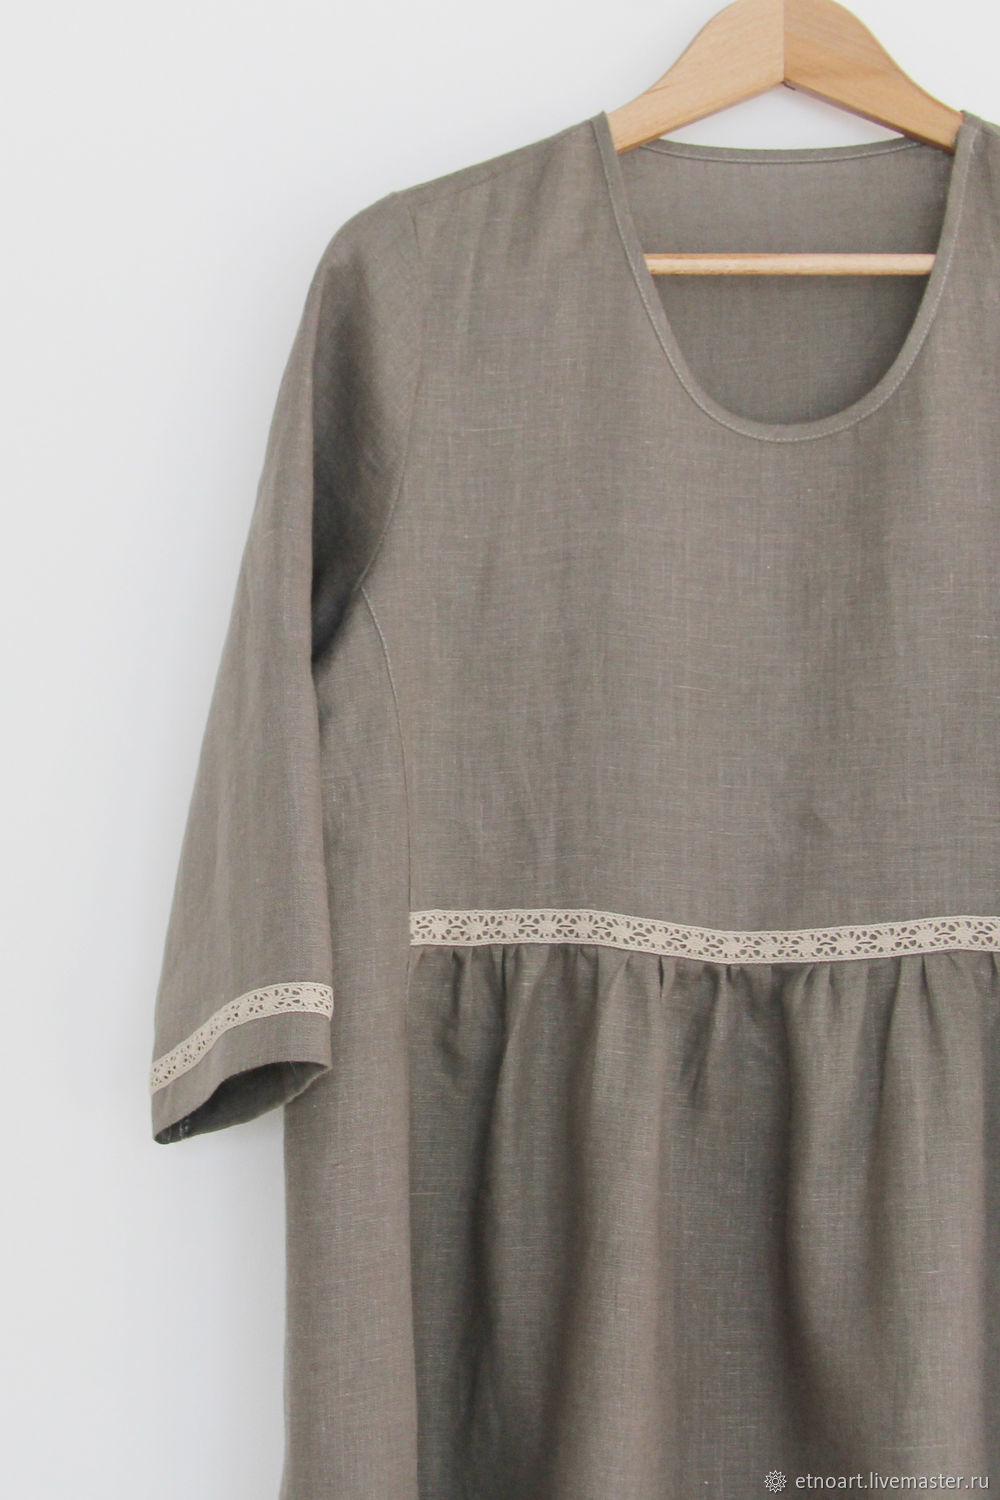 A linen dress in the style boho, Dresses, Tomsk,  Фото №1